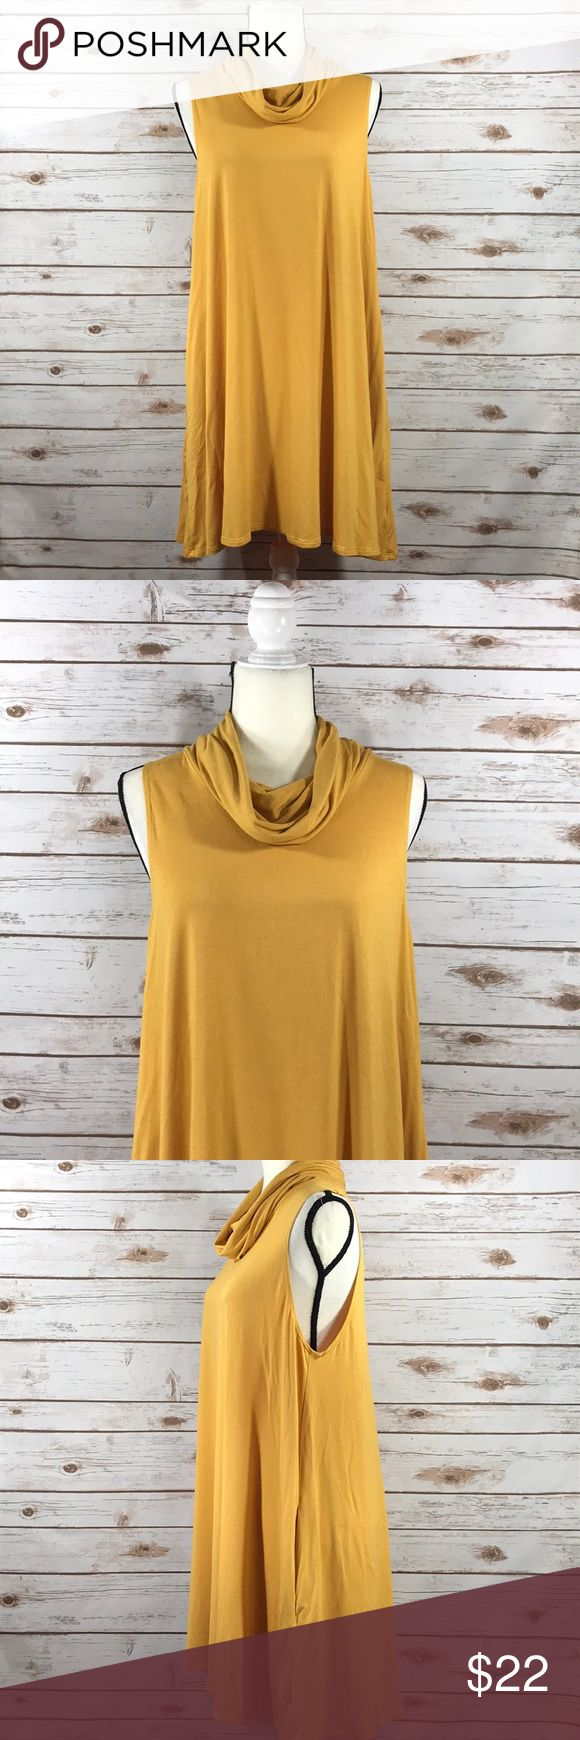 Cowl Neck Mustard Yellow Swing Dress with Pockets This is a size large Socialite Swing Dress with pockets in mustard yellow. This dress is perfect for fall with a jacket and ankle booties. The dress is in excellent used condition. Thanks! Socialite Dresses